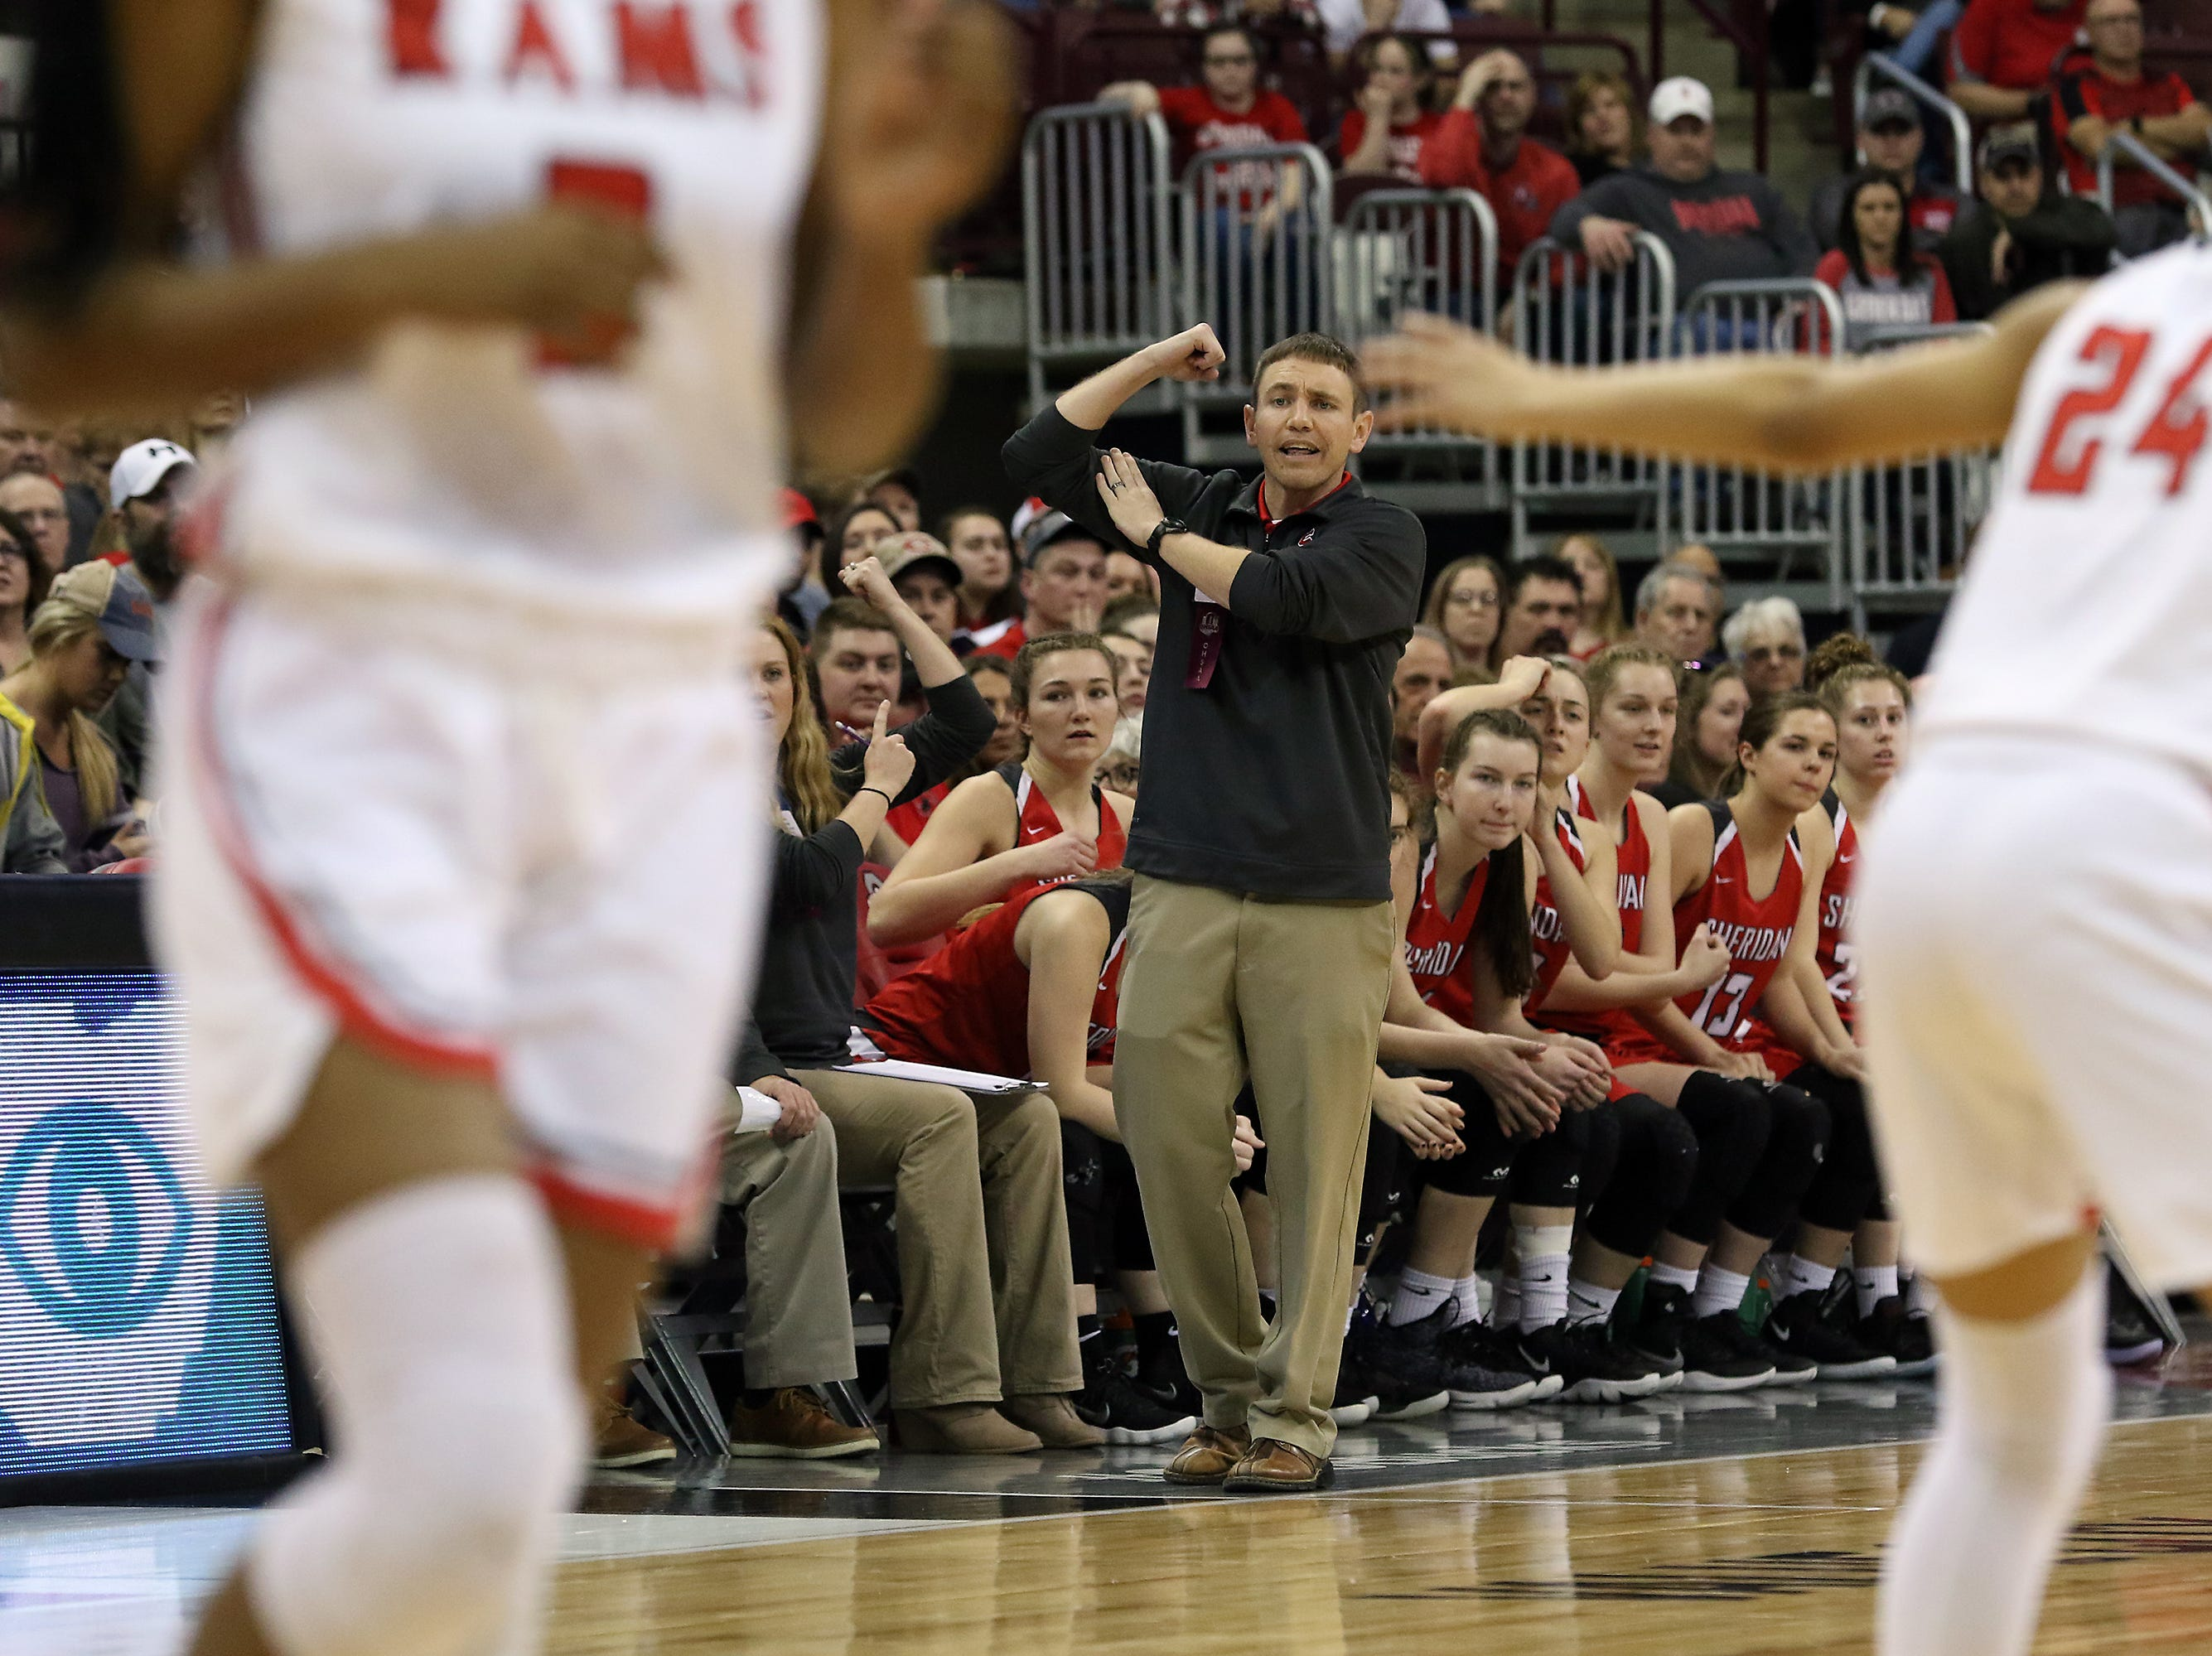 Sheridan head coach J.D. Walters calls a play in the Division II state semis against Toledo Rogers.